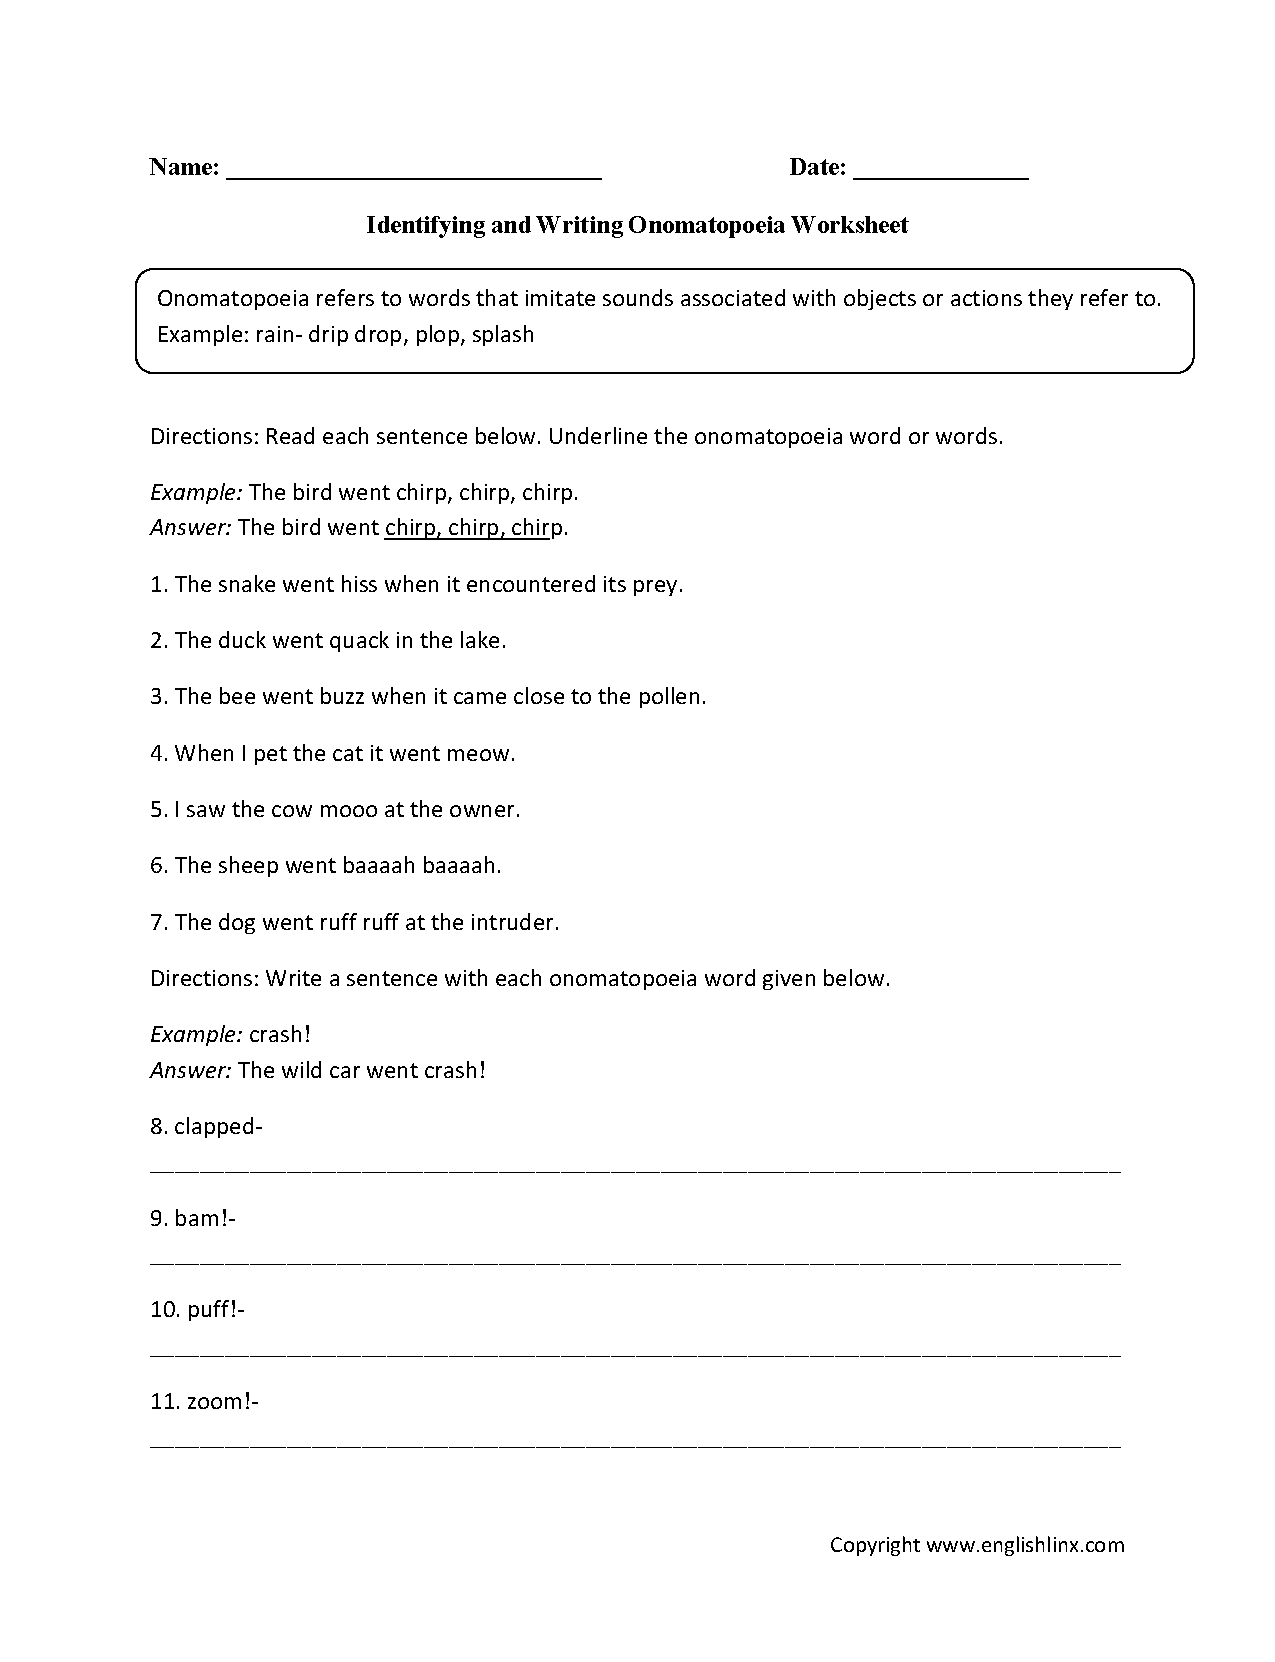 Identifying And Writing Onomatopoeia Worksheet